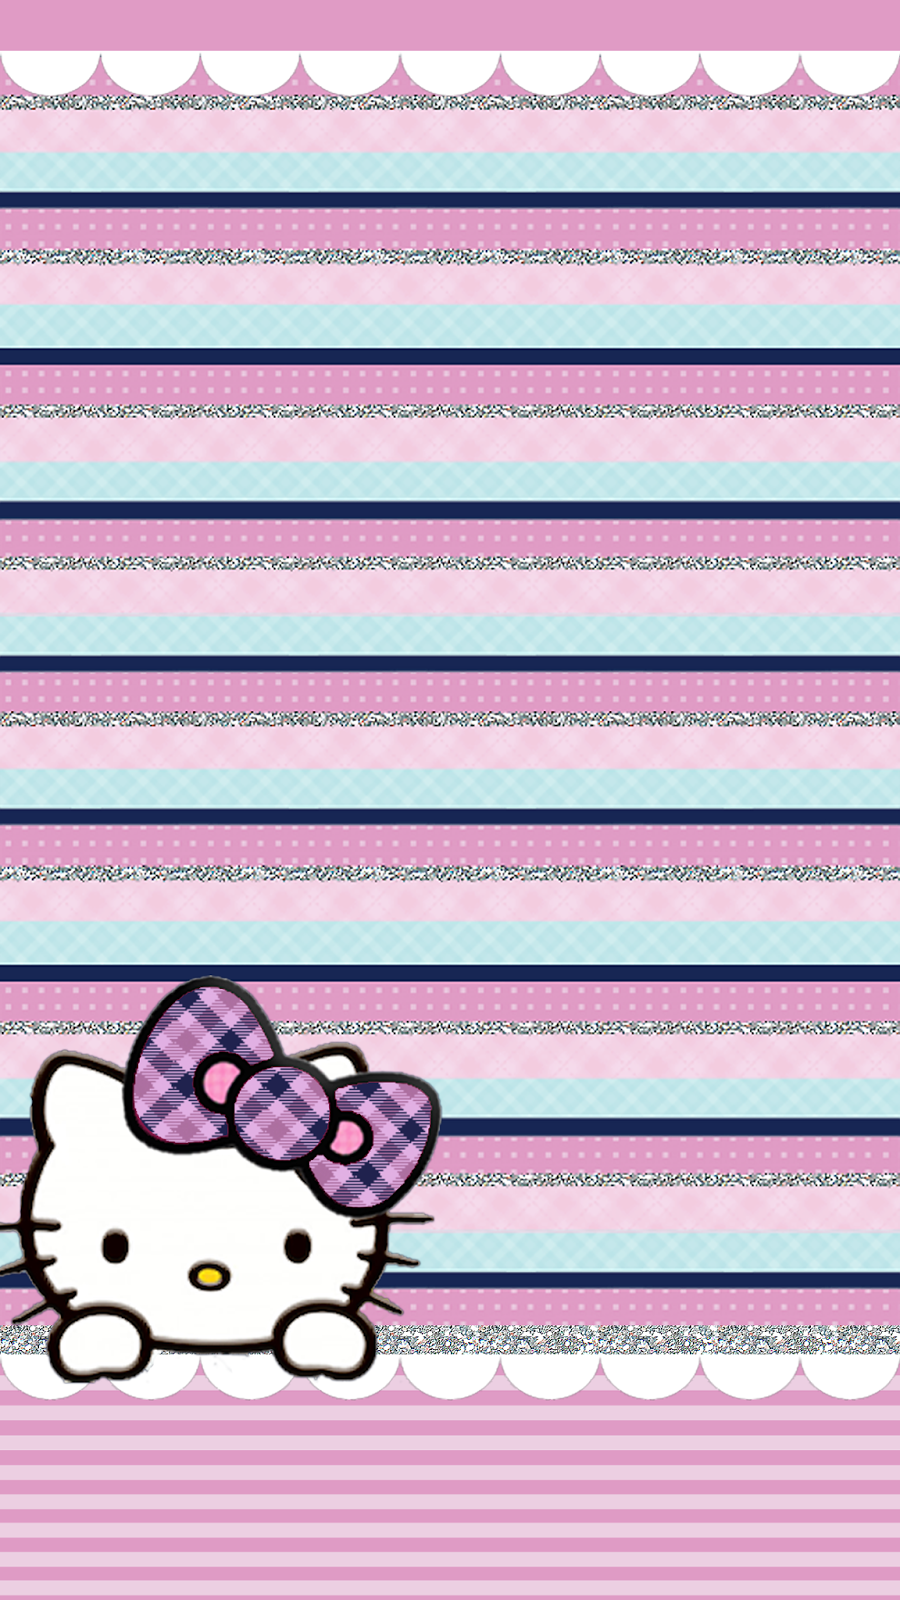 Free Wallpapers To Match Poshbean Hello Kitty Iphone Wallpaper